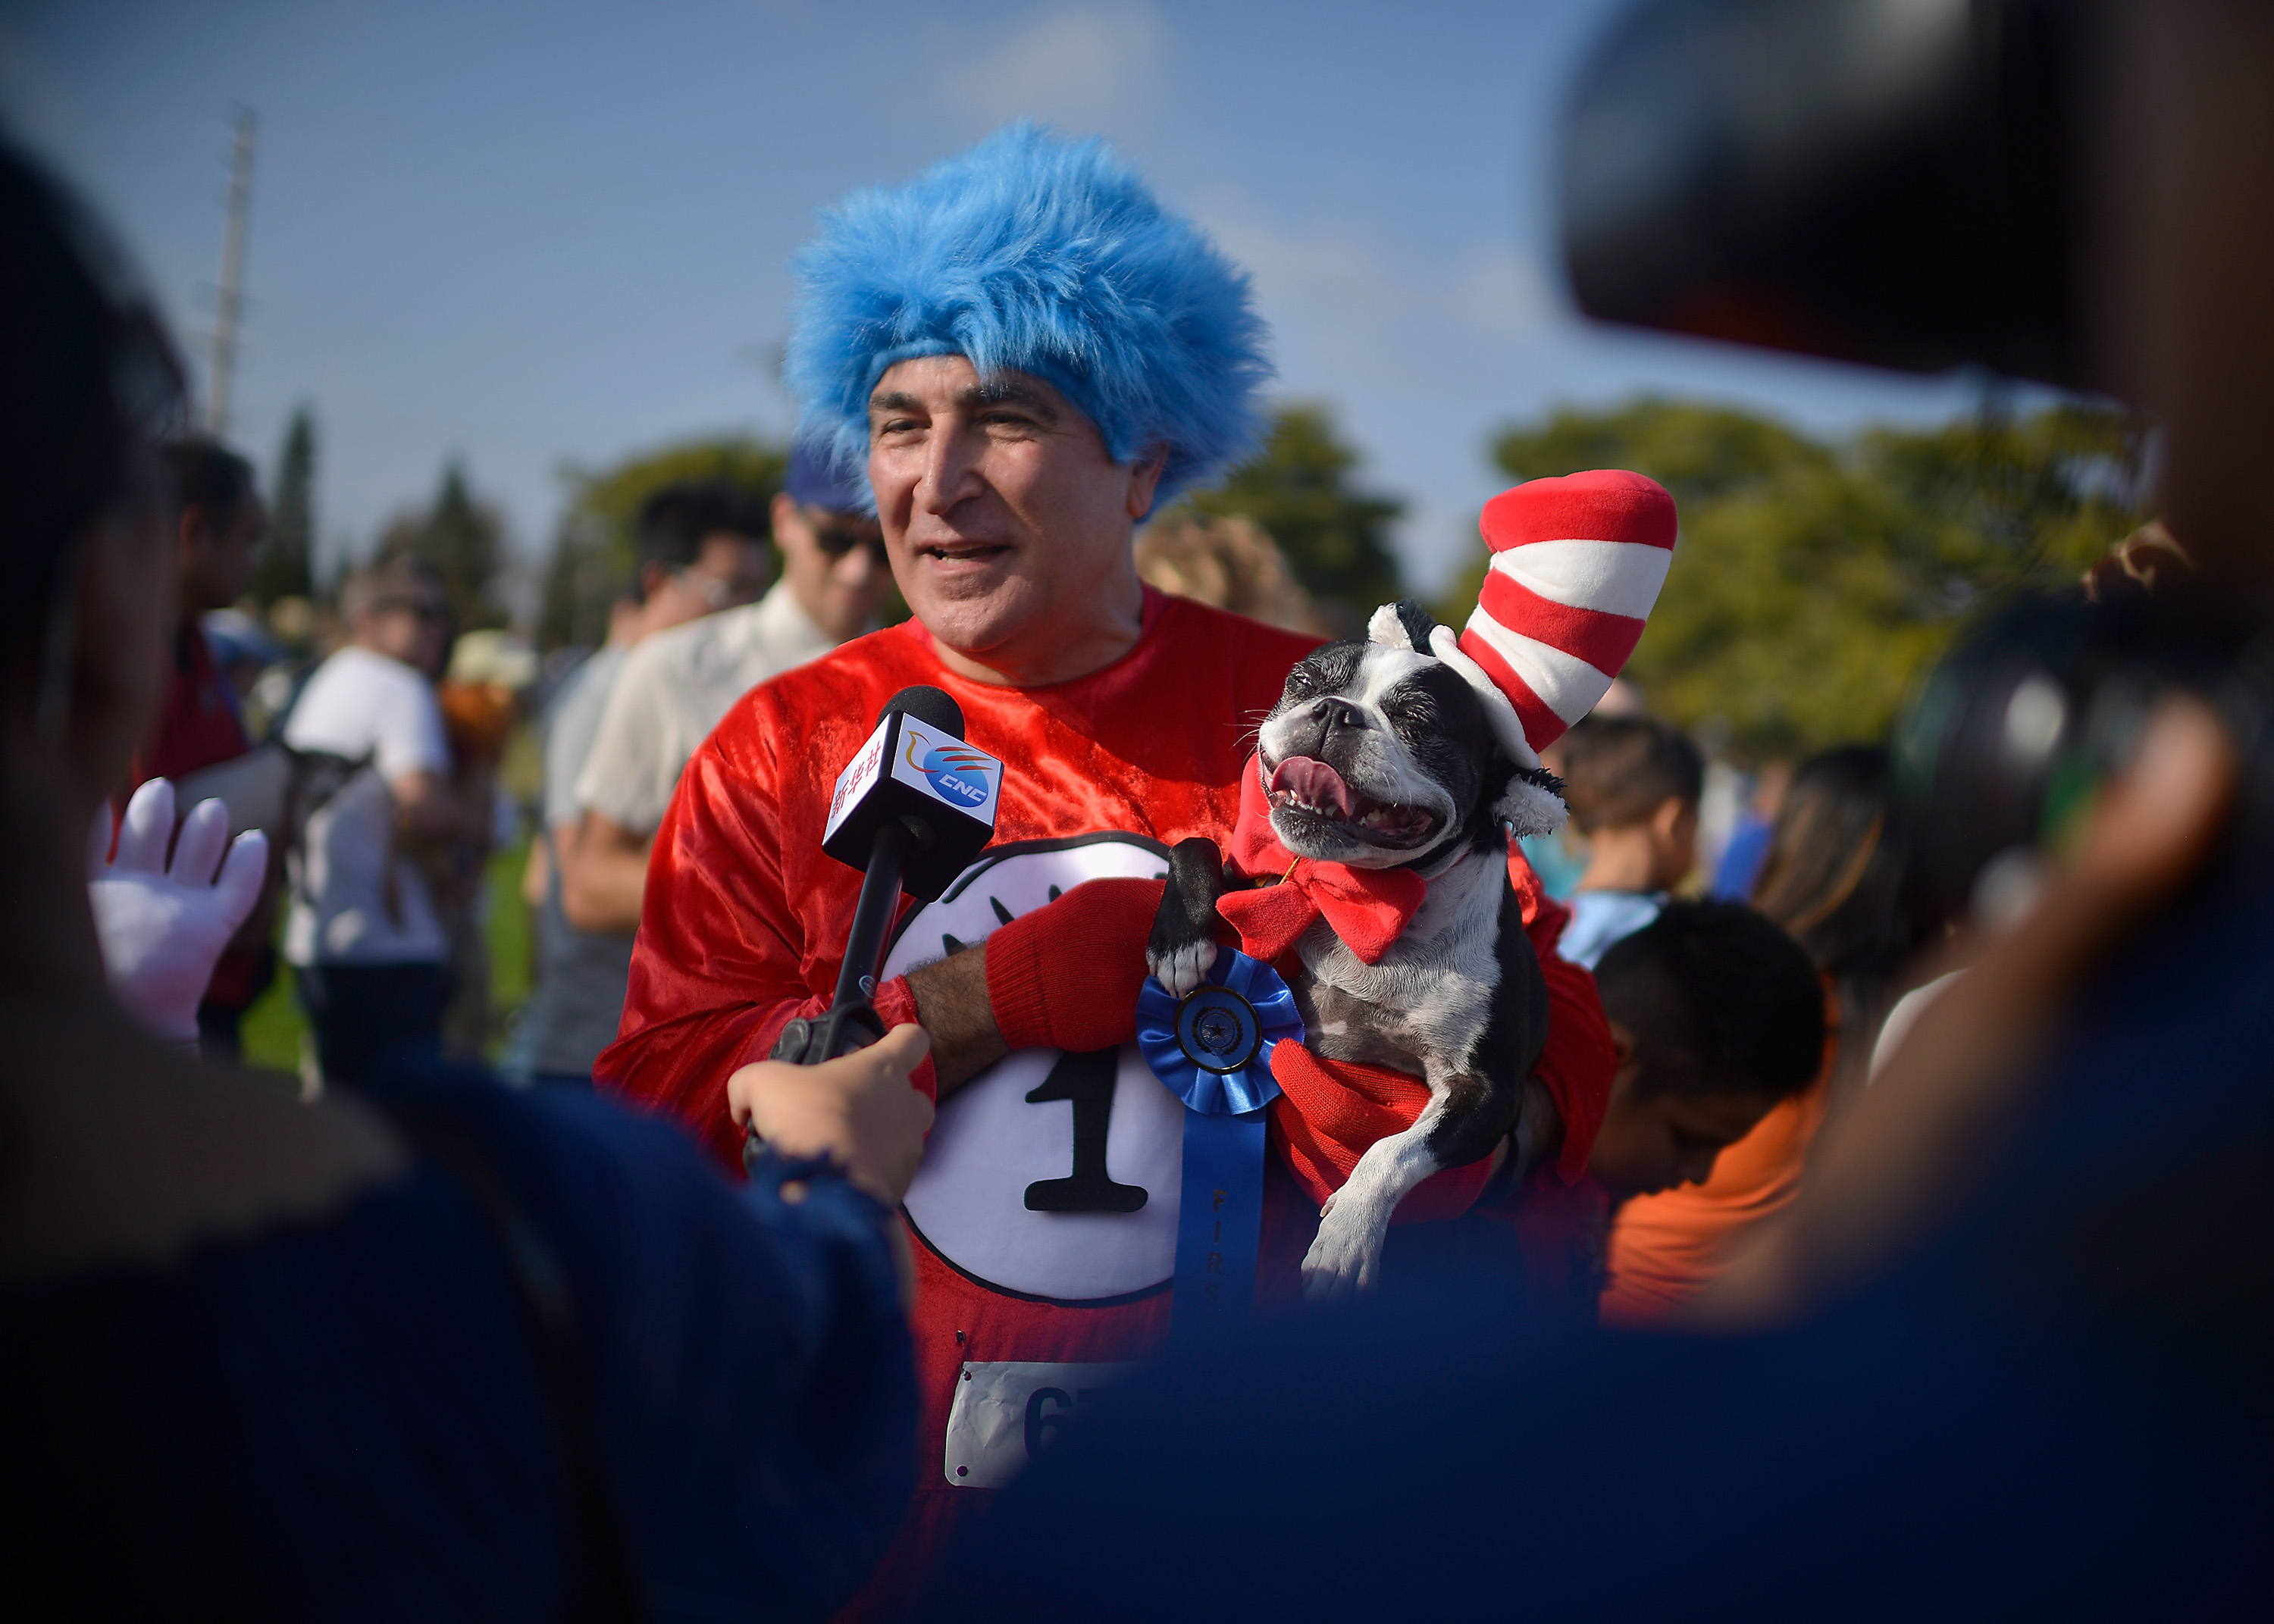 Winners of the parade, Lucy, a boston terrier dressed as Cat in the Hat, and her owner dressed as Thing 1 attends Haute Dog Howl'oween Parade on October 29, 2017 in Long Beach, California. Chelsea Guglielmino/Getty Images